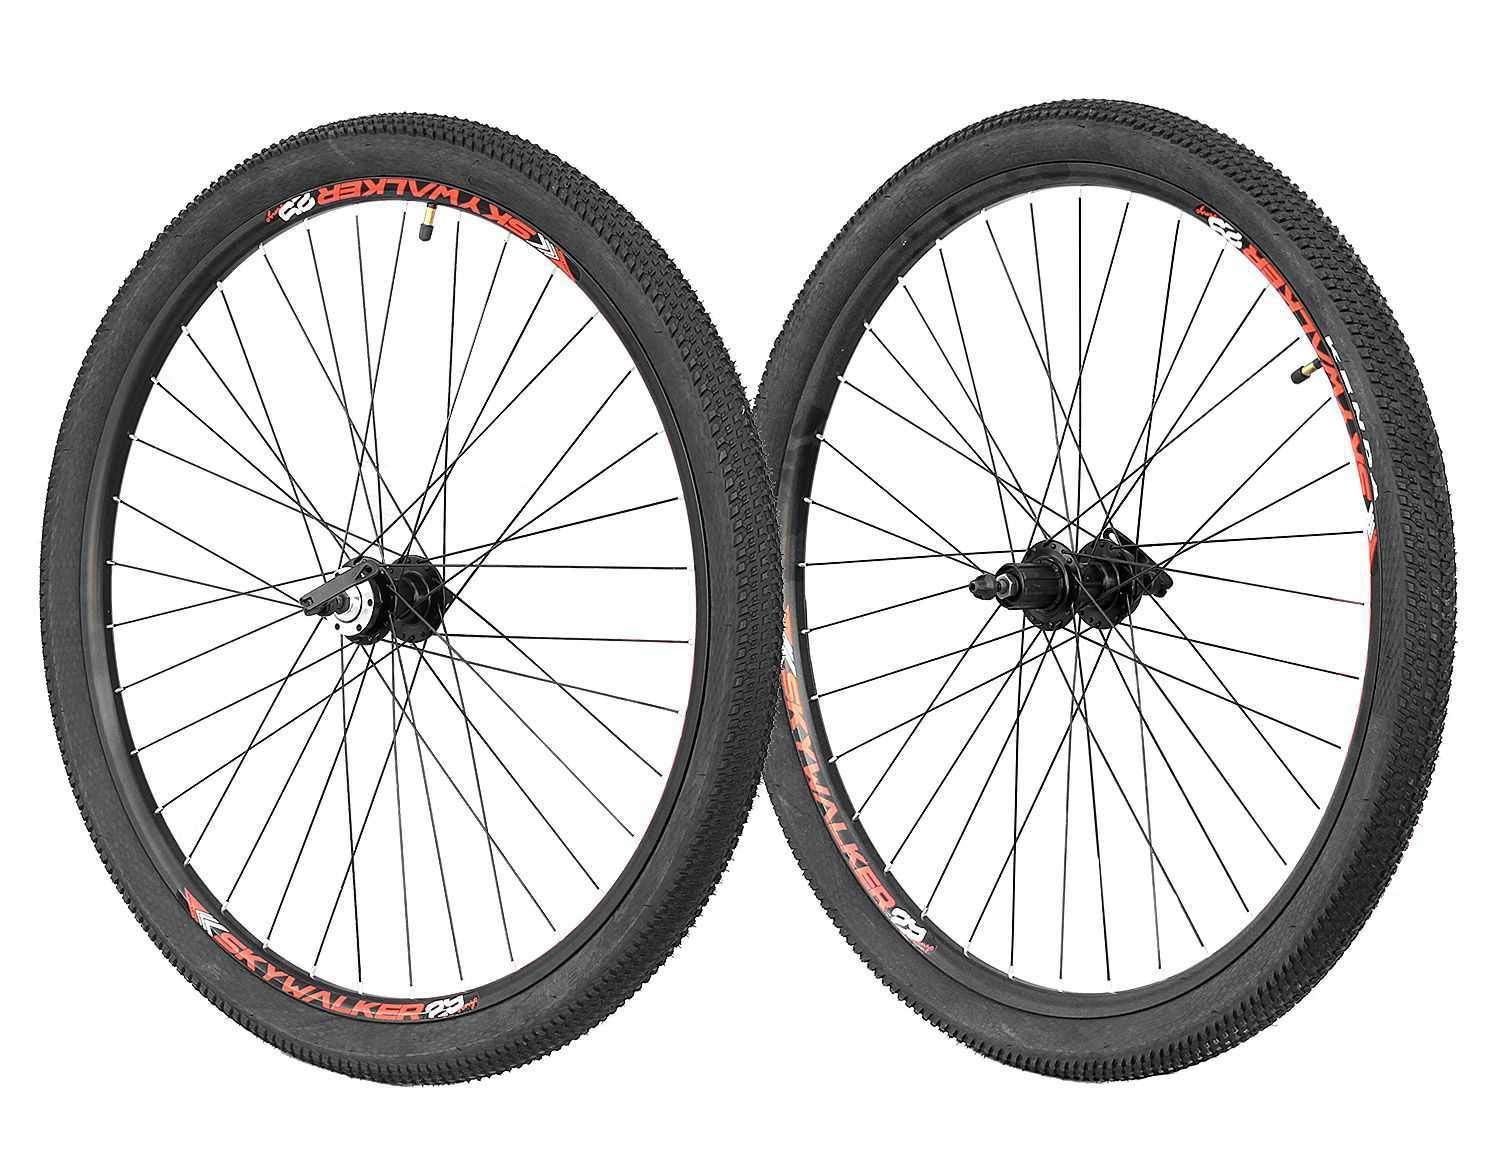 Cyclingdealマウンテンバイク29インチdisc-brake Wheelsets Shimano 10 Speed QR F & R B07B7FNGFB